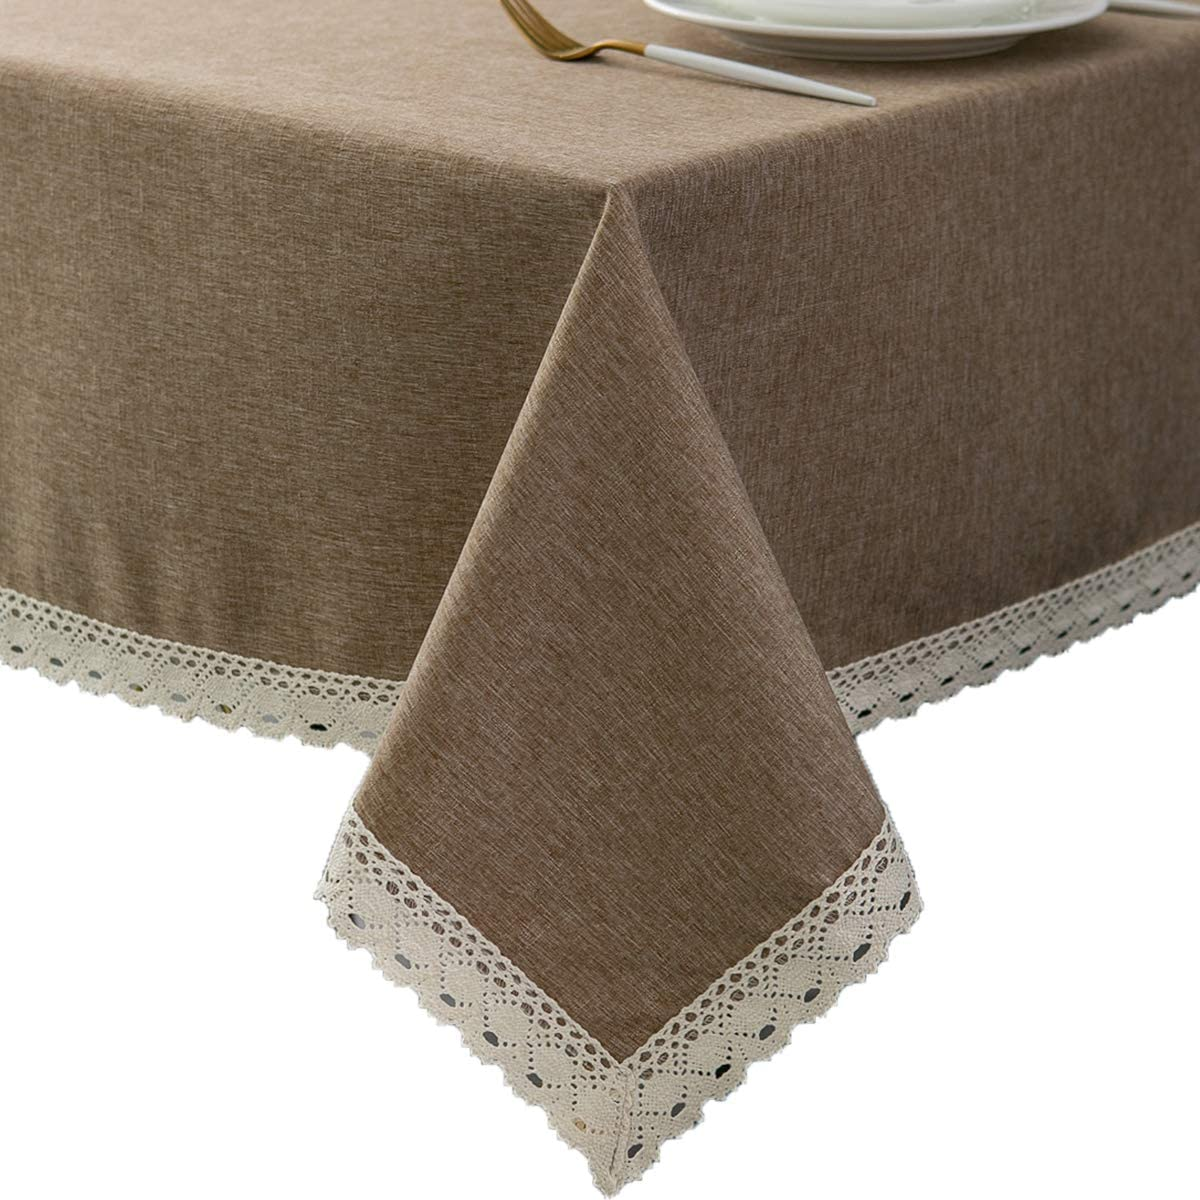 EHouseHome Faux Linen Tablecloth with Lace Trim - Waterproof/Spill Proof/Stain Resistant/Wrinkle Free/Oil Proof - for Banquet, Parties, Dinner,Kitchen,Wedding,Coffee,Holiday,Flax,Rectangle 60x120Inch